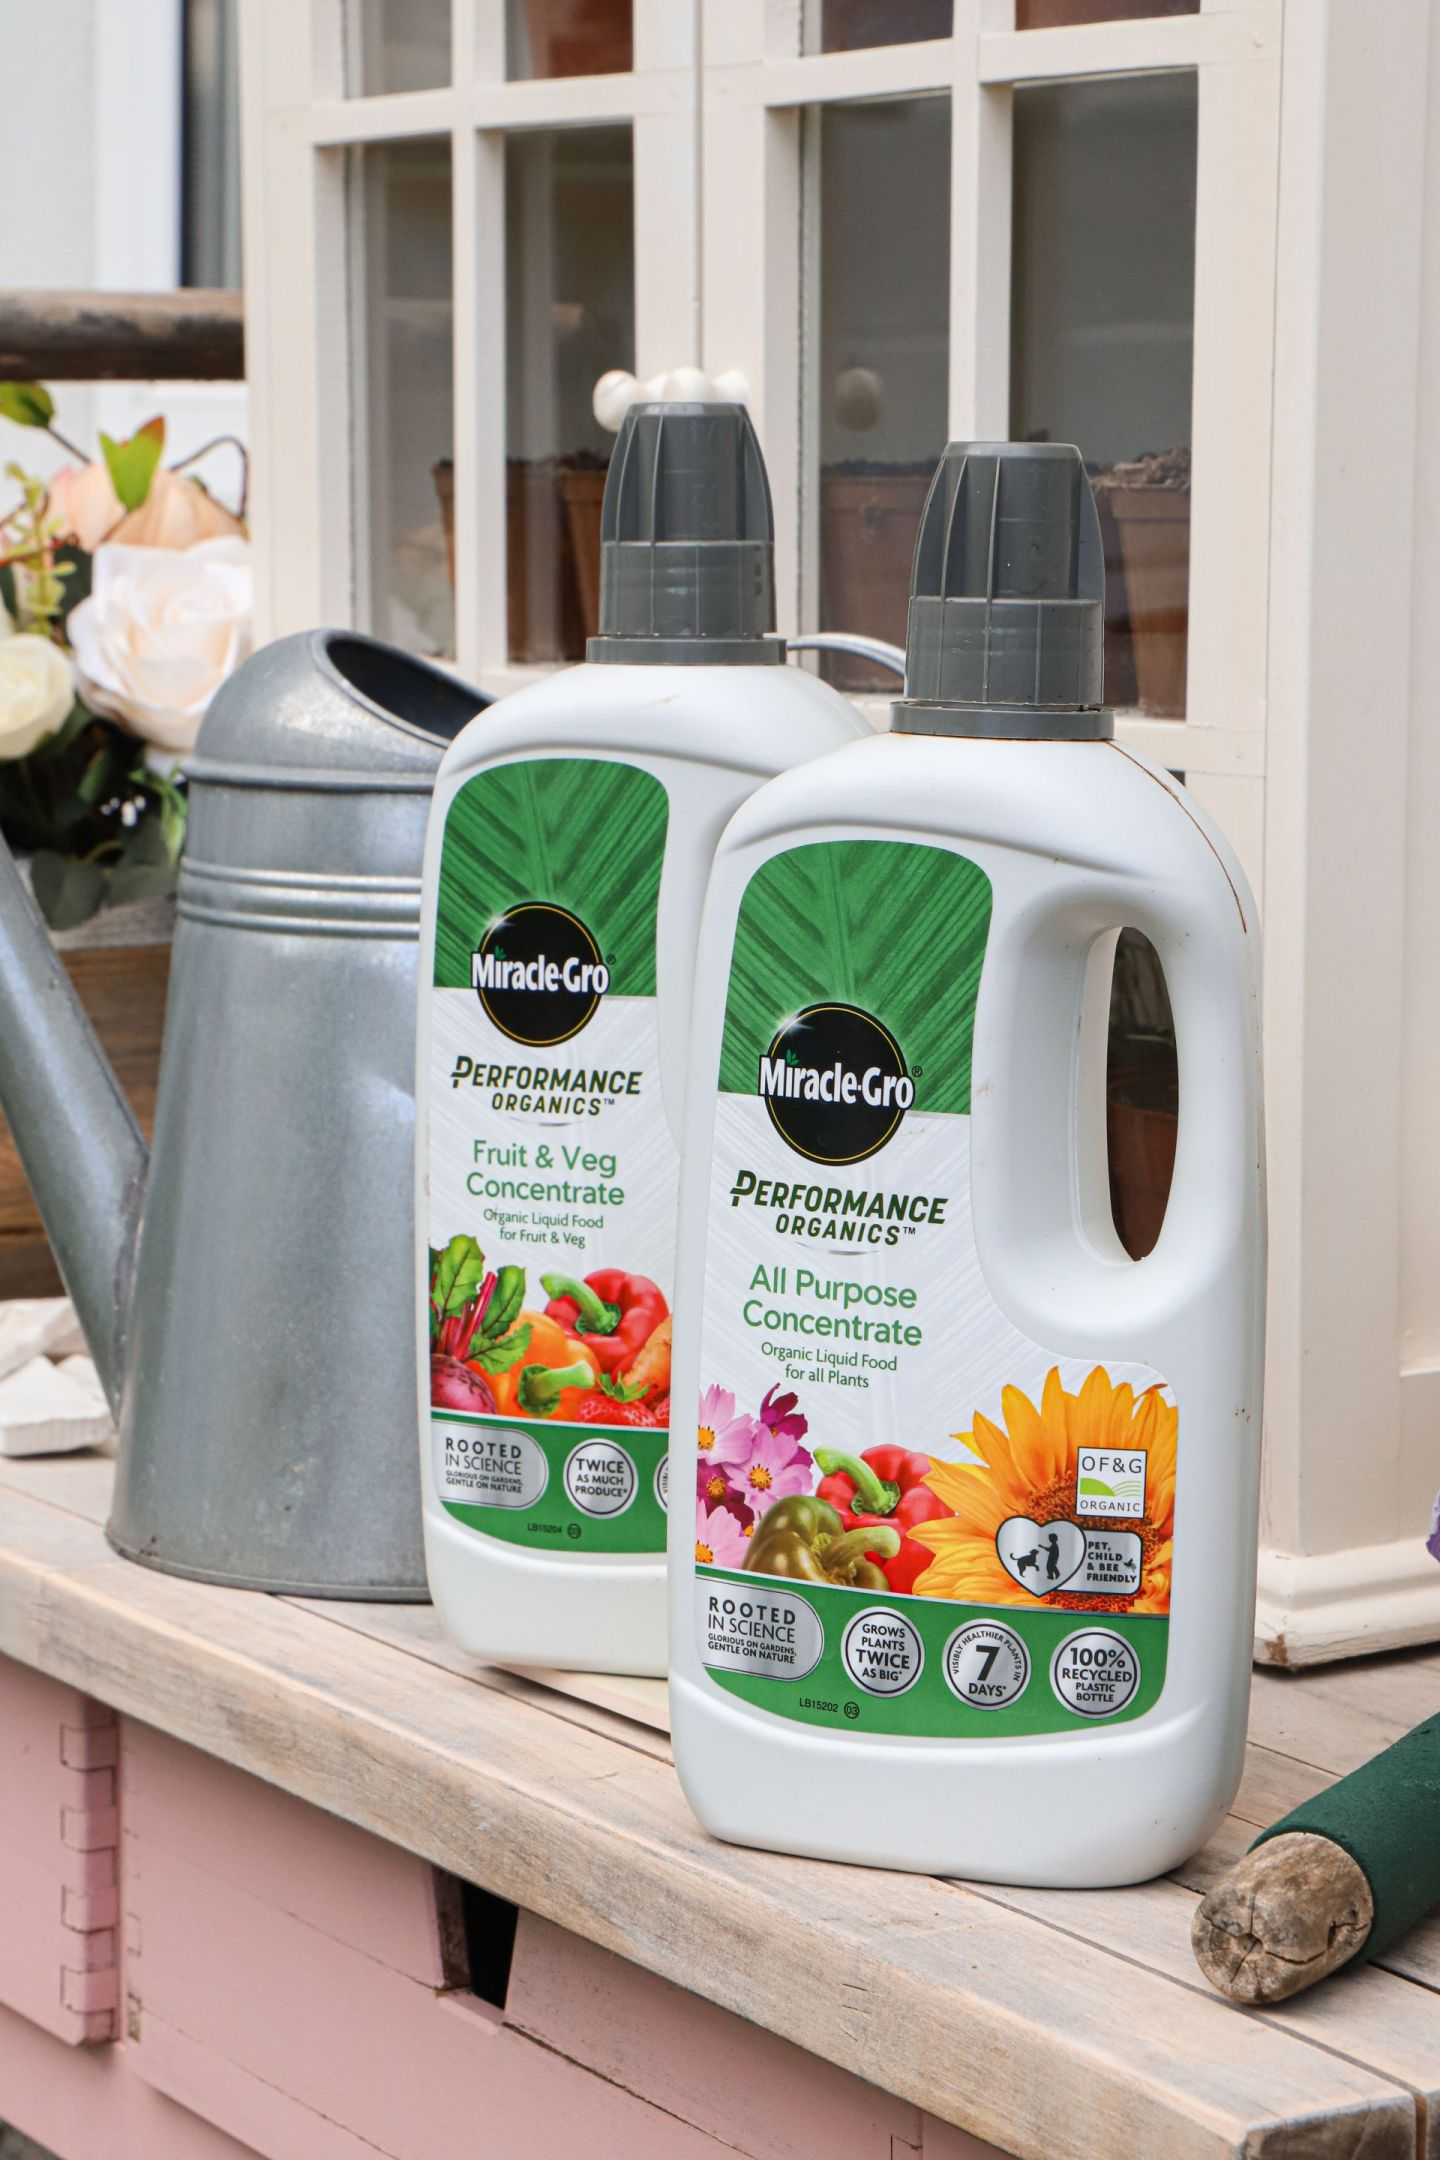 Miracle Gro Performance organics